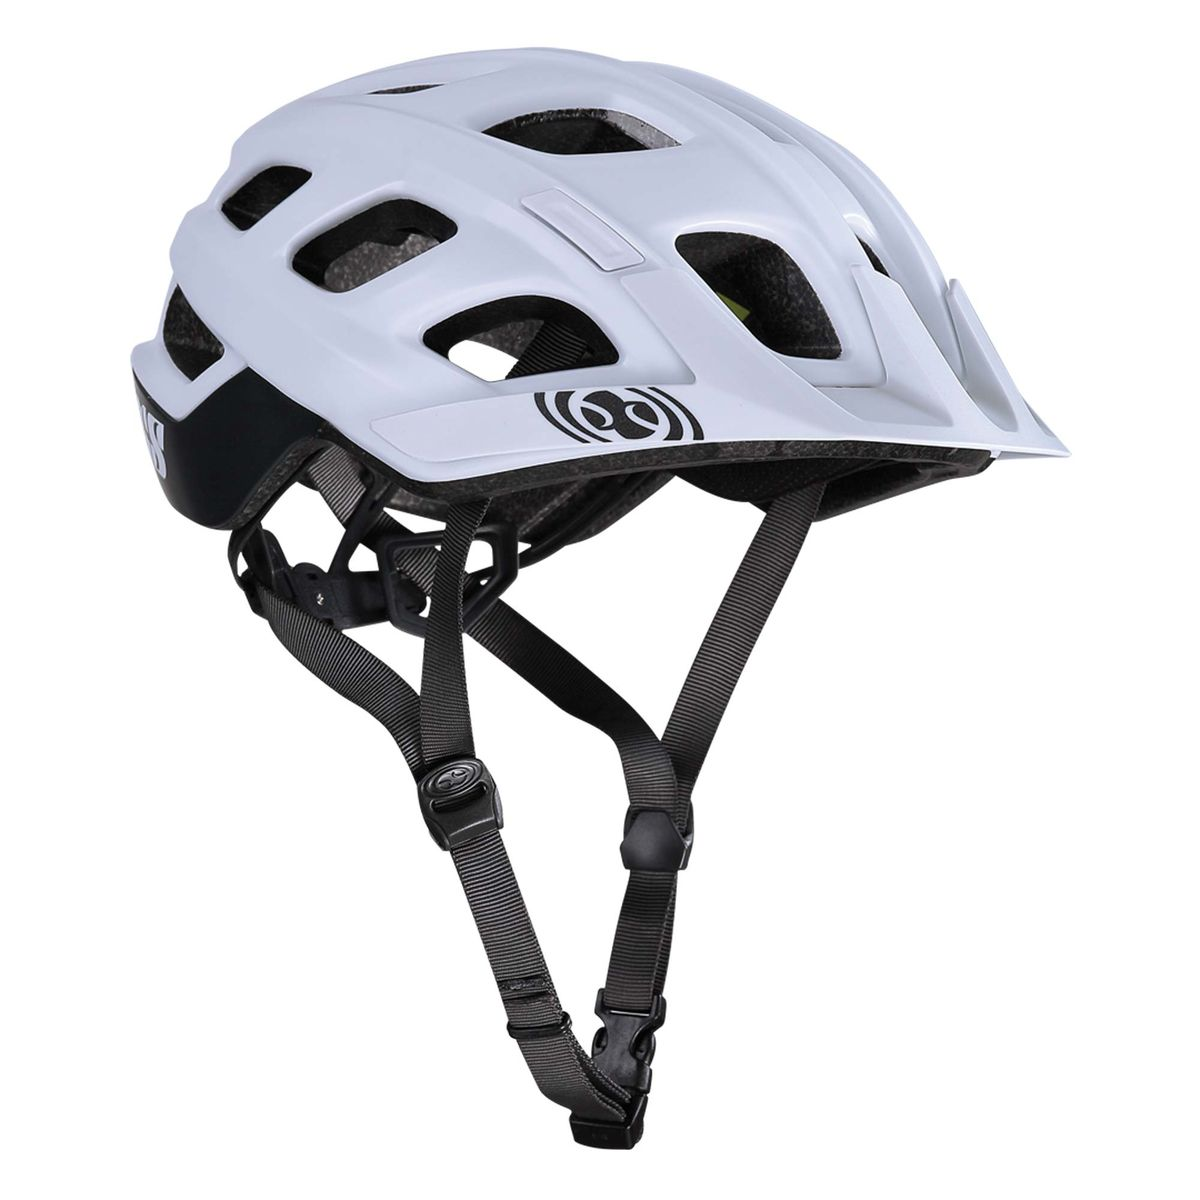 TRAIL XC cycle helmet